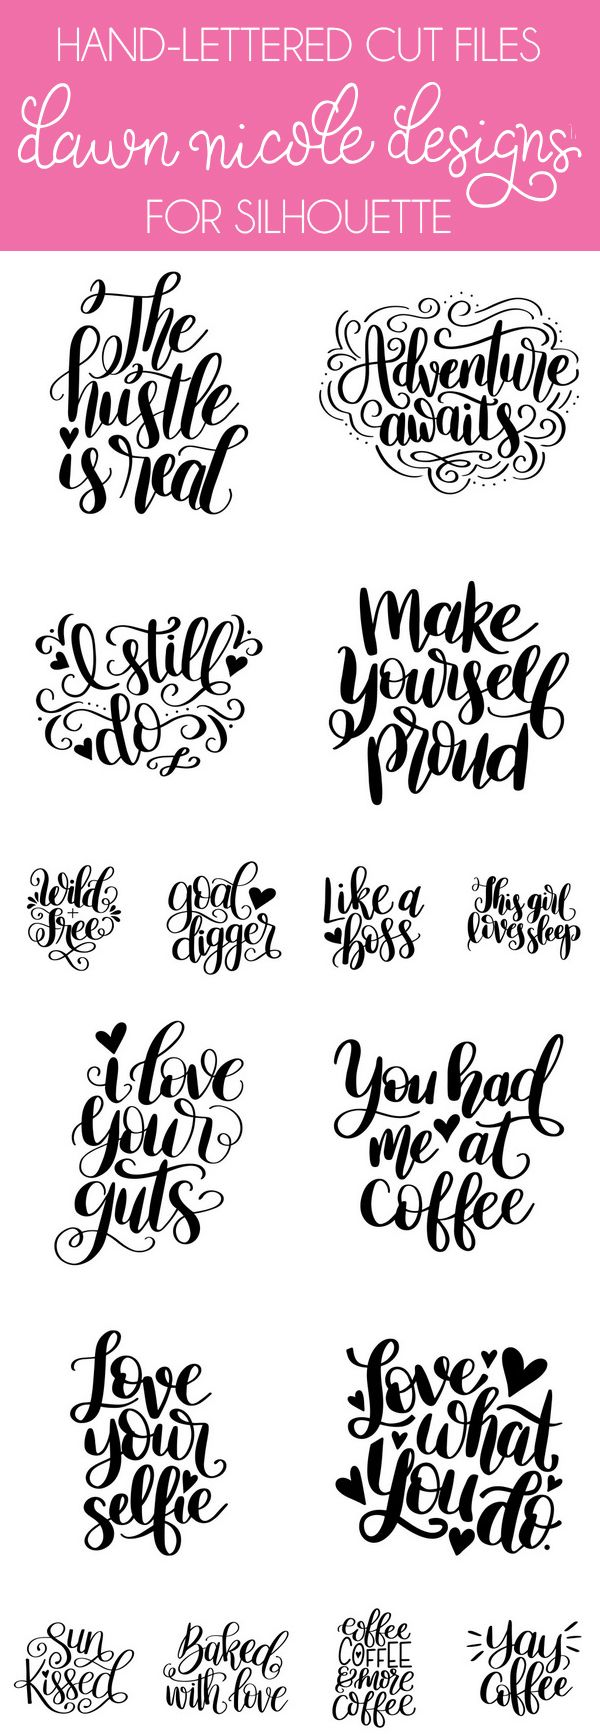 50 hand lettered silhouette cut files by dawn nicole designs